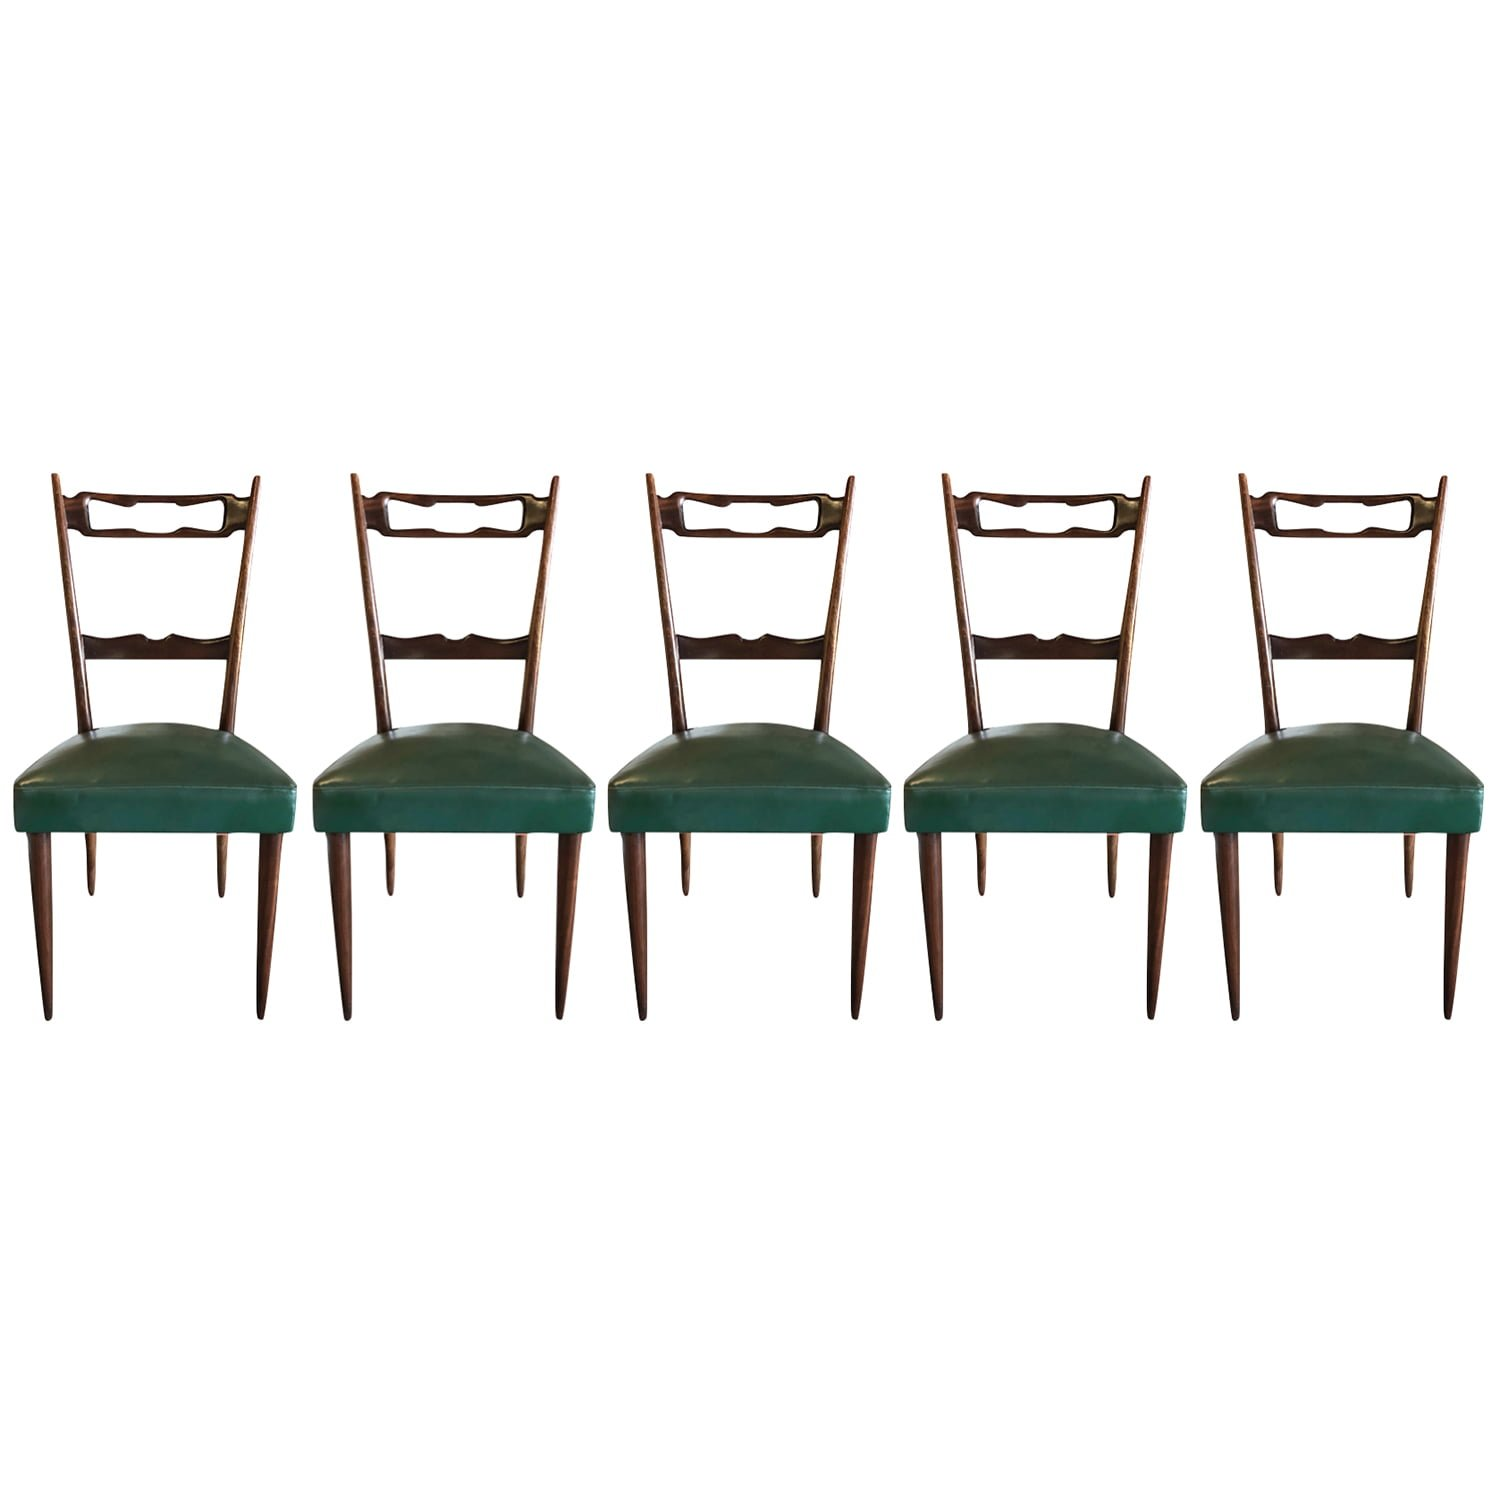 20th Century Italian Set of Five Walnut Dining Chairs by Paolo Buffa